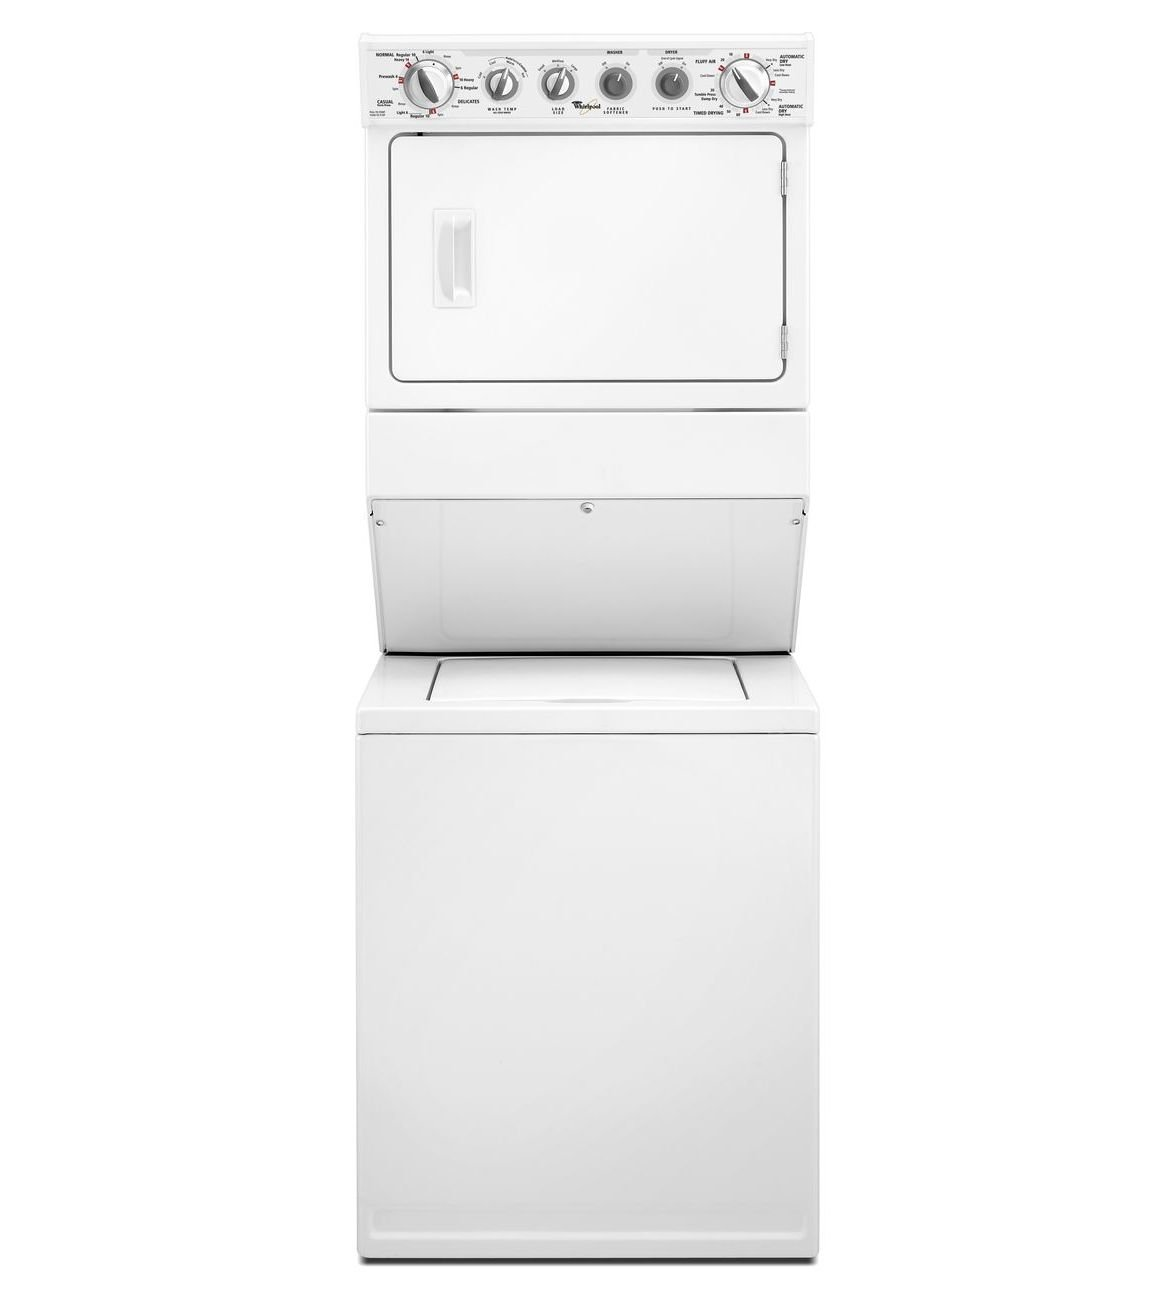 amazoncom whirlpool wet3300xq 84 cu ft white electric washerdryer combo appliances